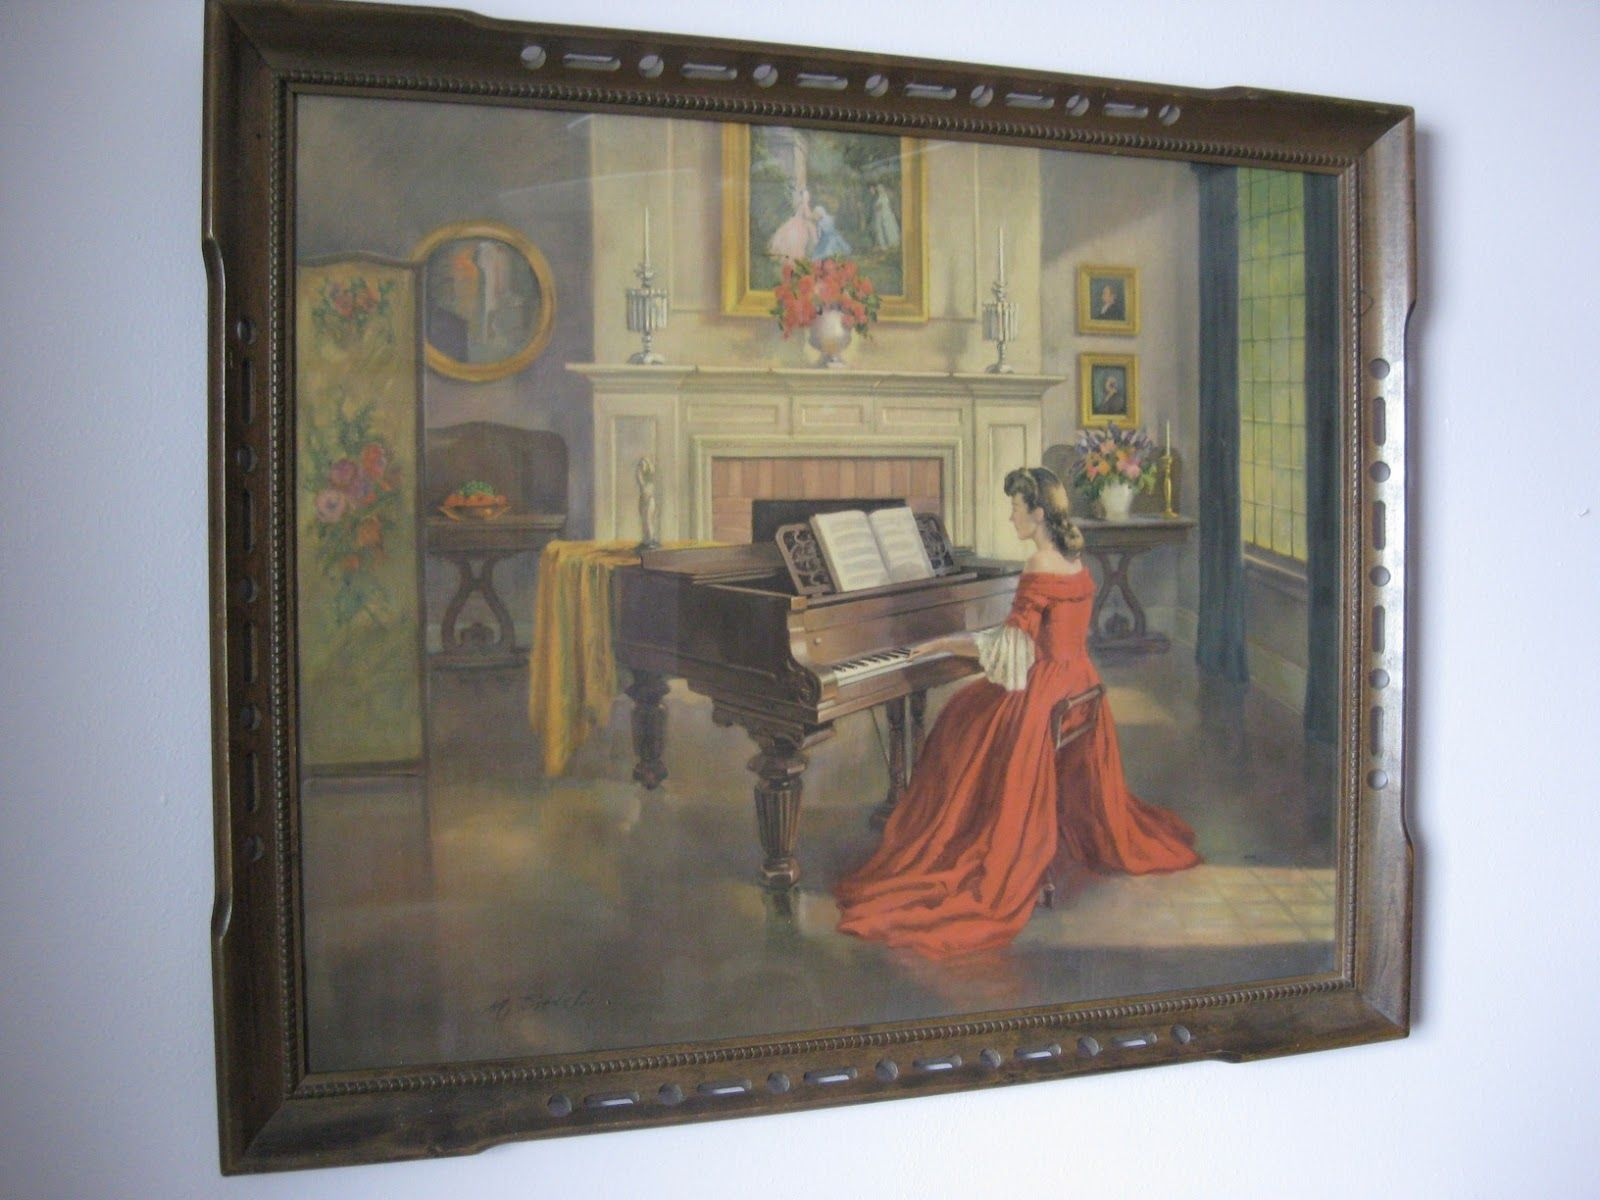 Old painting woman red gown piano this painting of the victorian woman in a red dress playing the piano